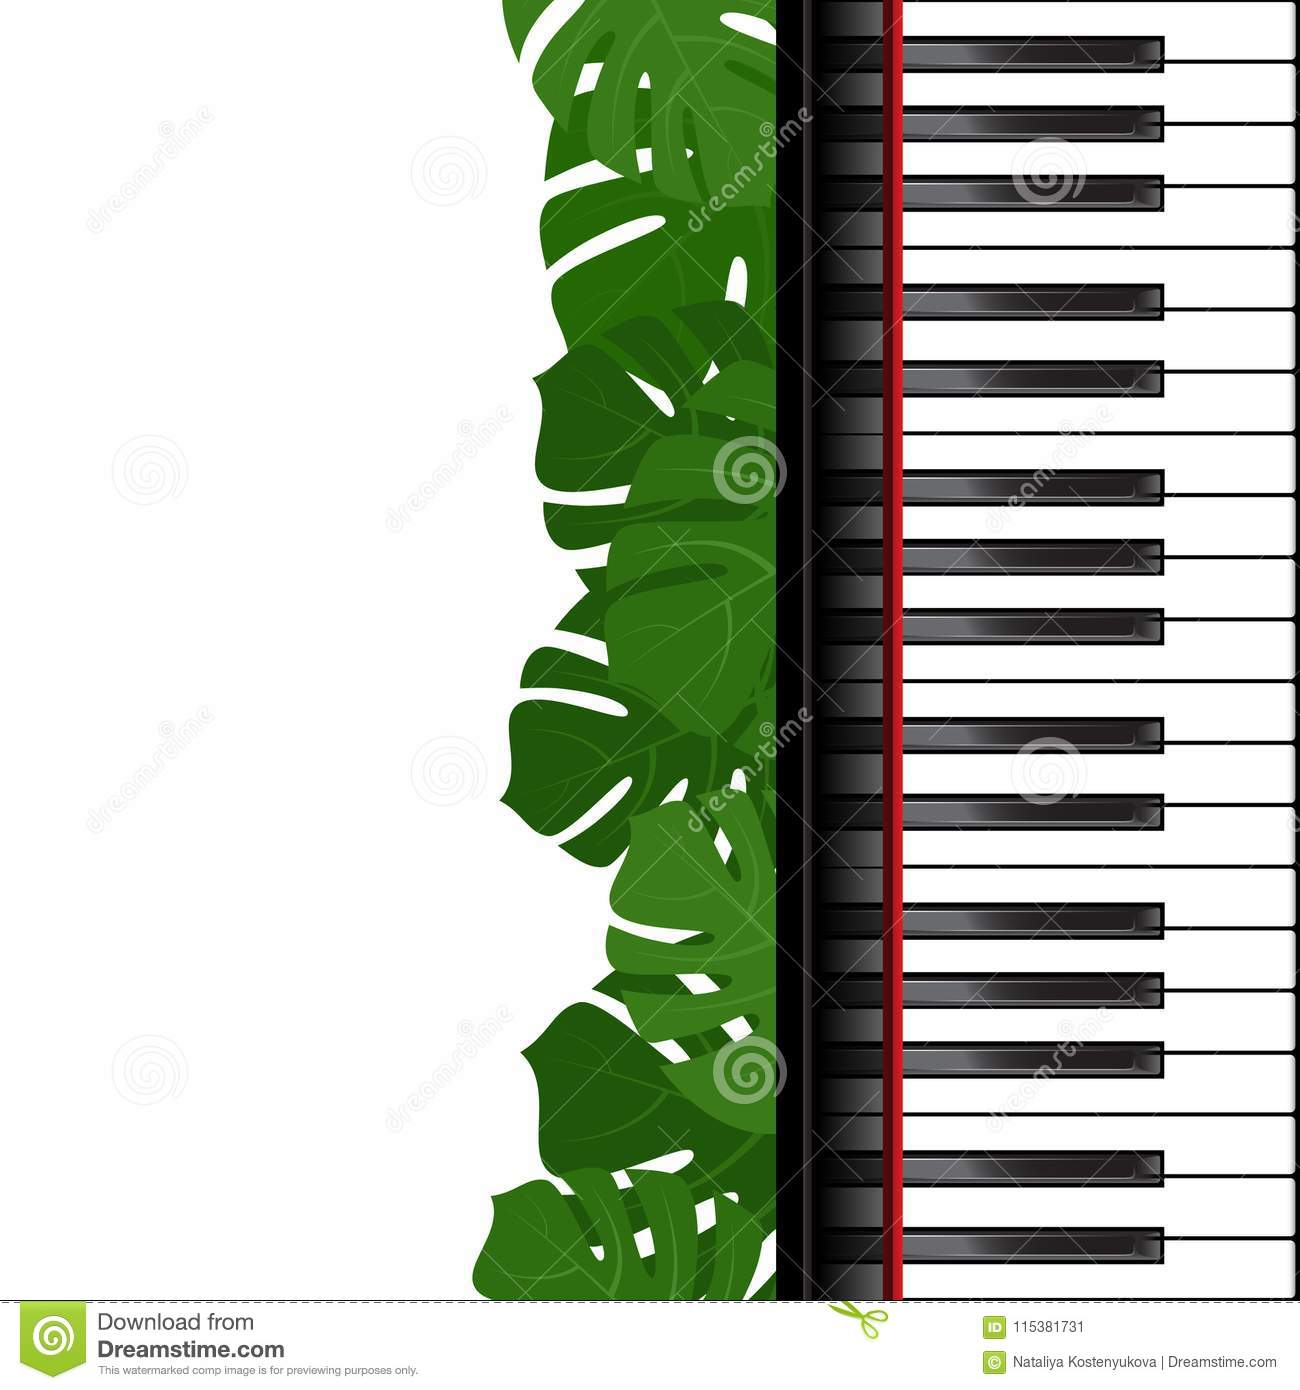 Piano Keyboard And Monstera Leaves Frame As Template For Card Vector Illustration